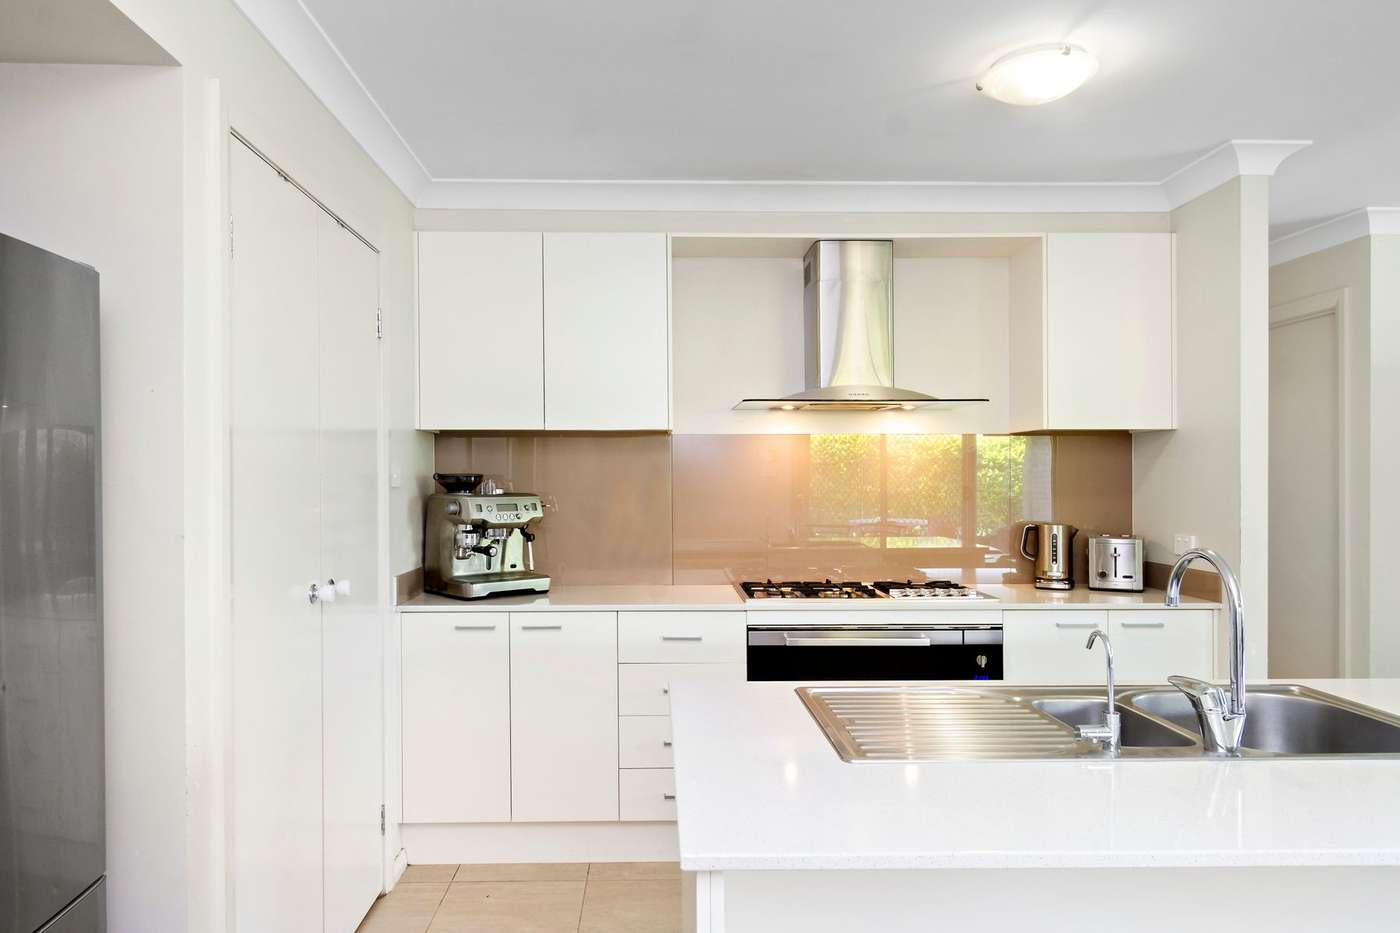 Main view of Homely house listing, 8/7 Fonda Avenue, Rutherford, NSW 2320